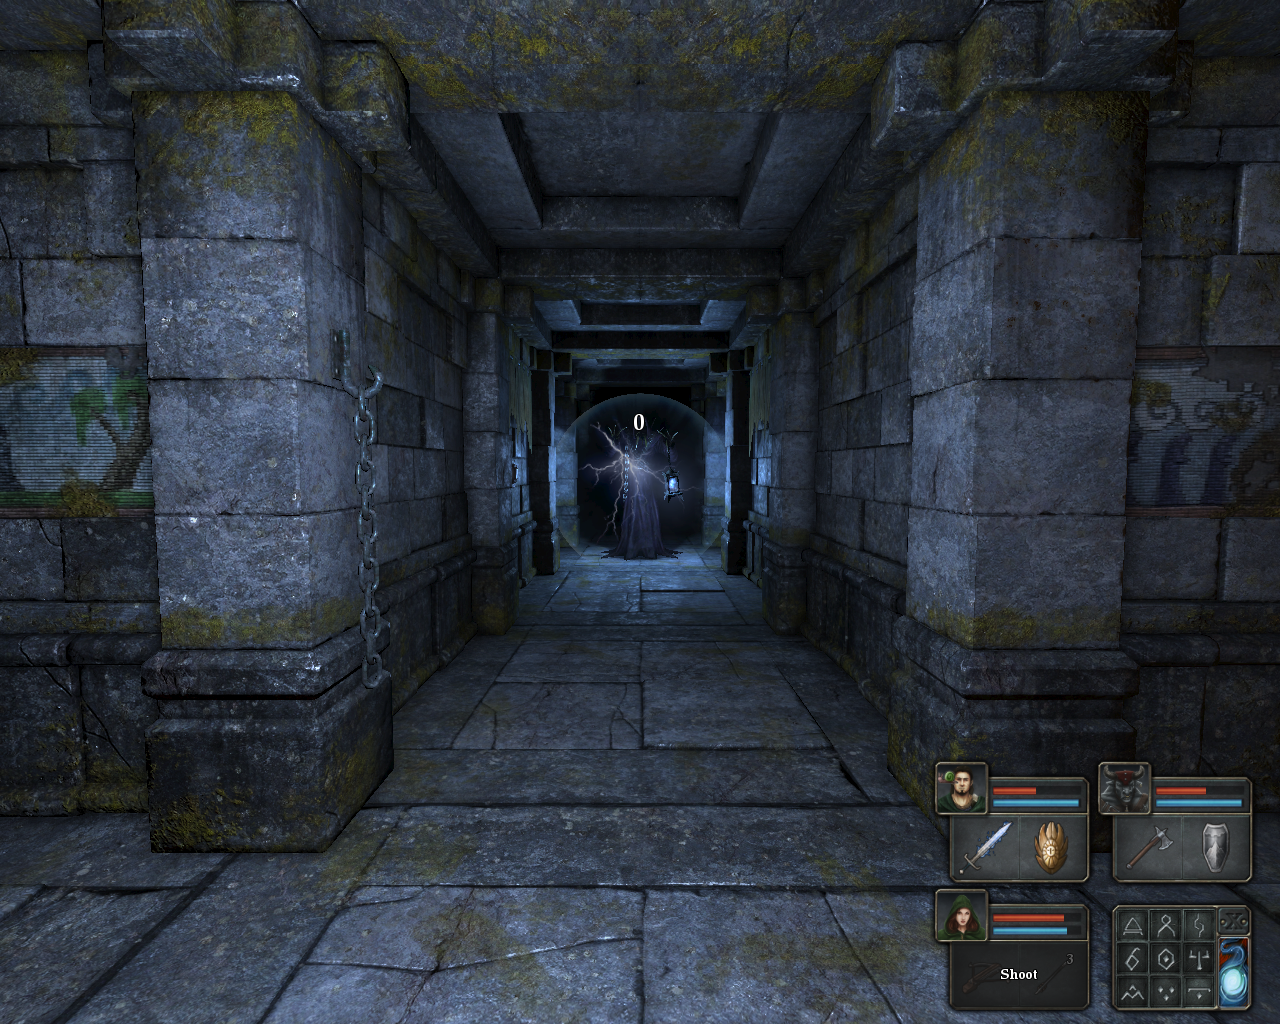 Legend of Grimrock Windows The mages are shielded